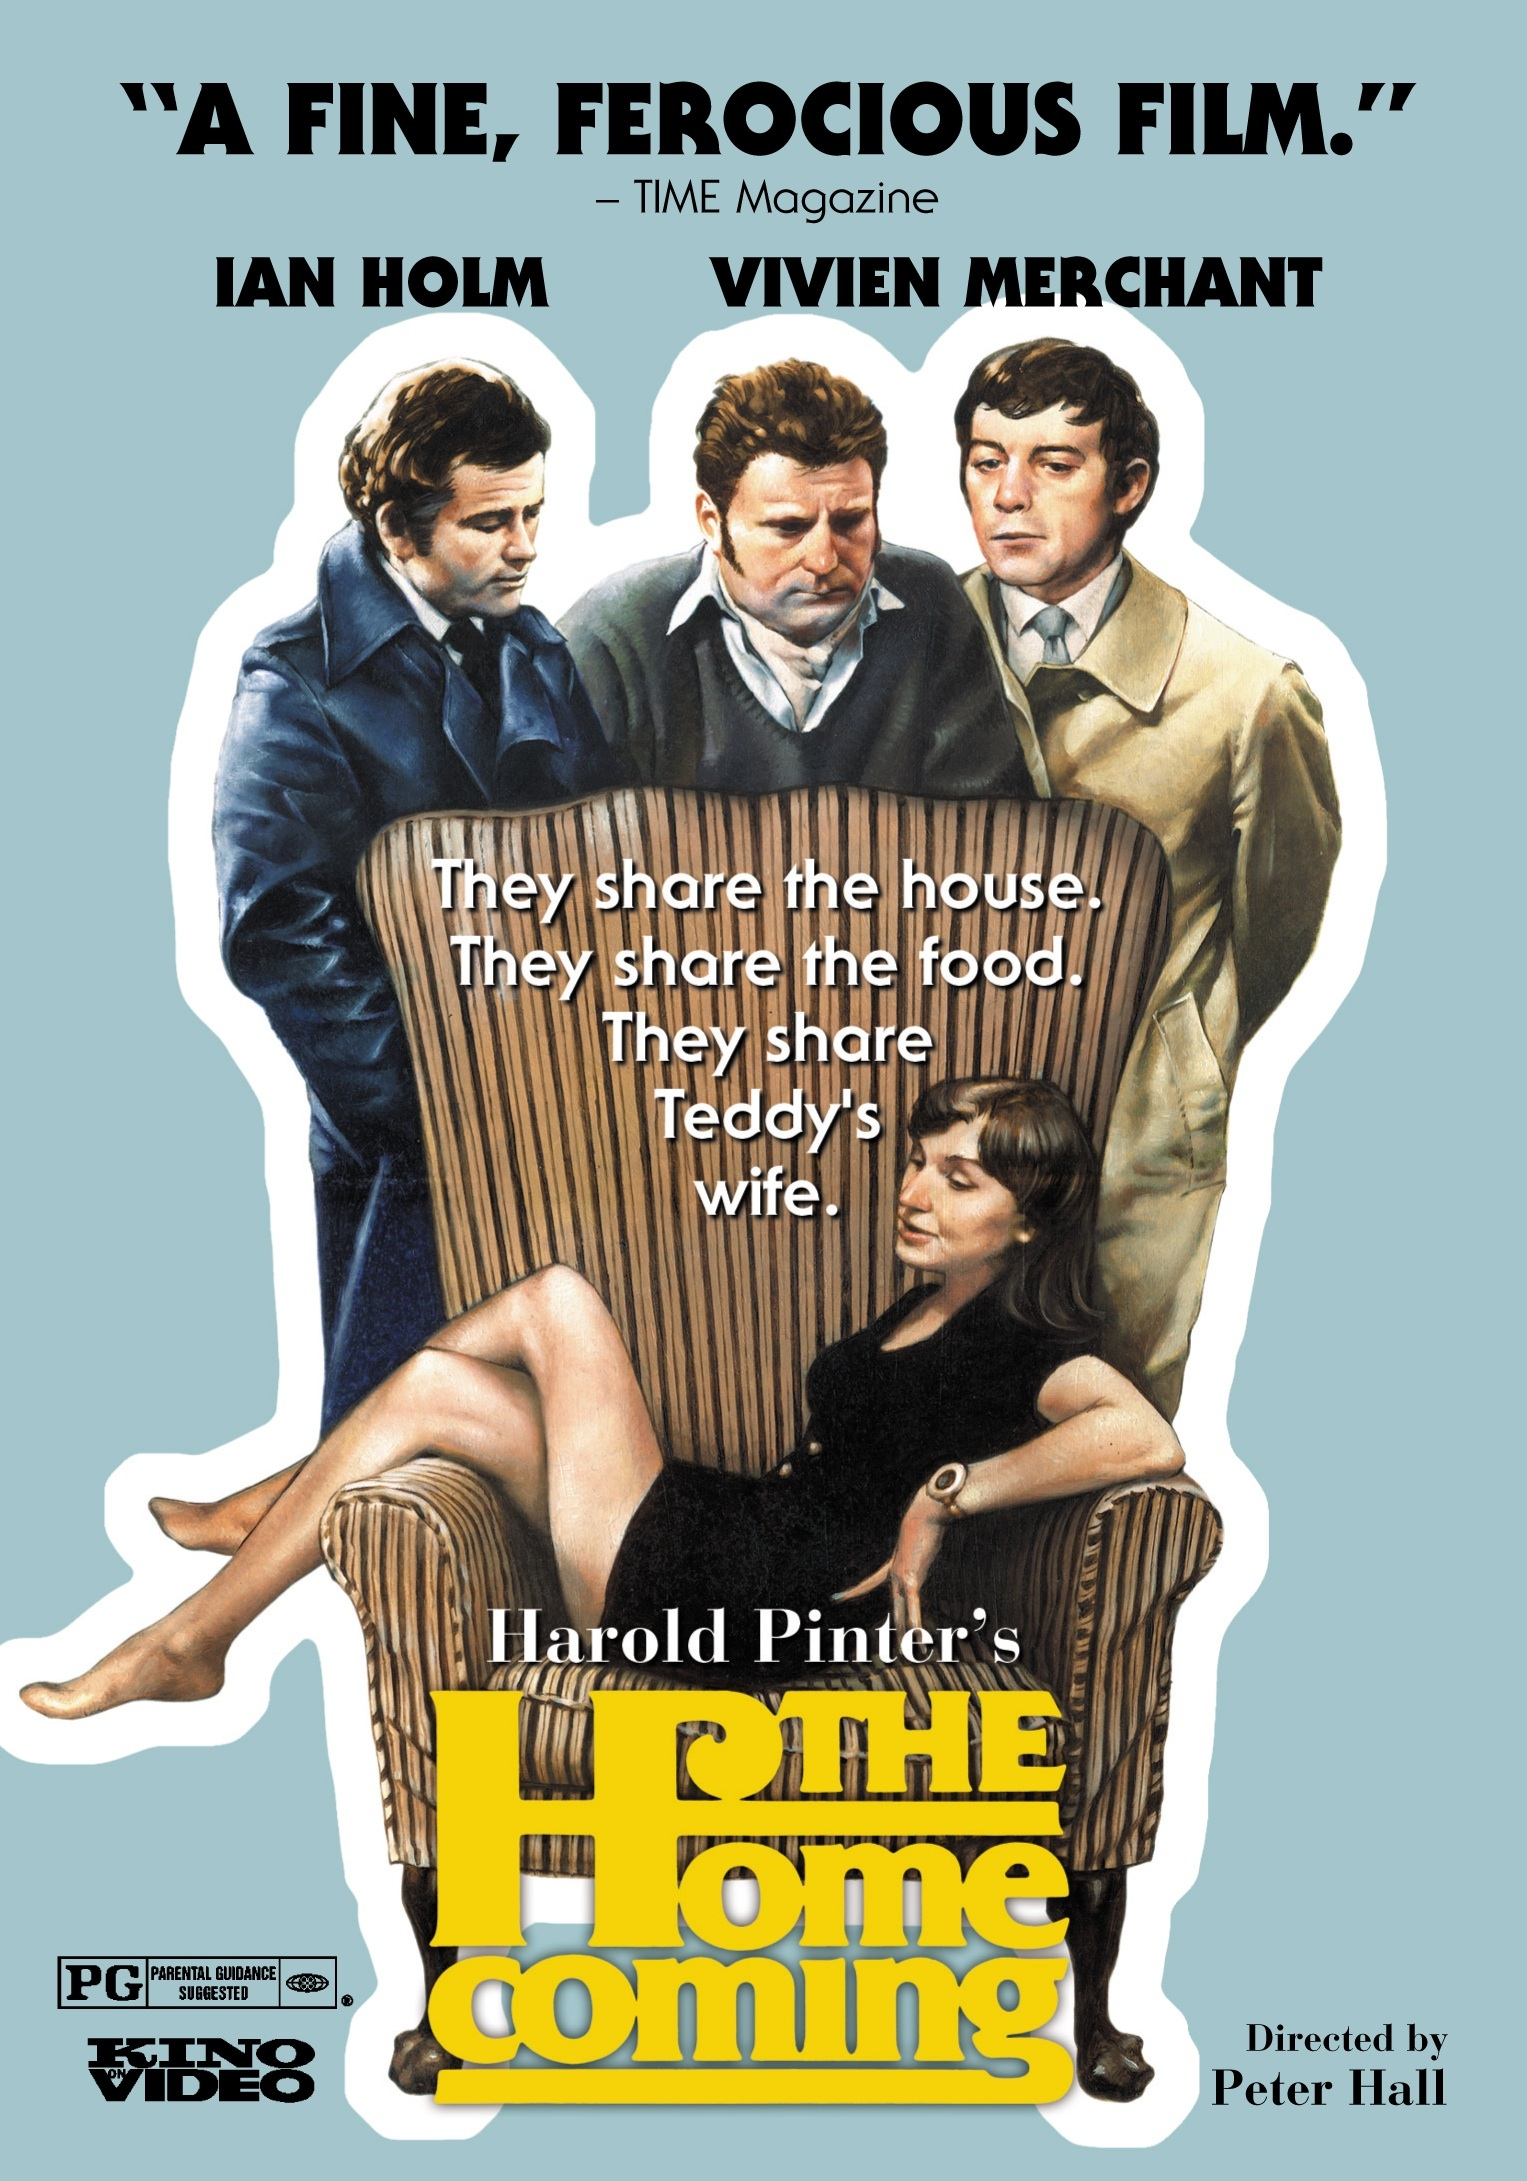 the unexpected return of the eldest son in the homecoming by harold pinter